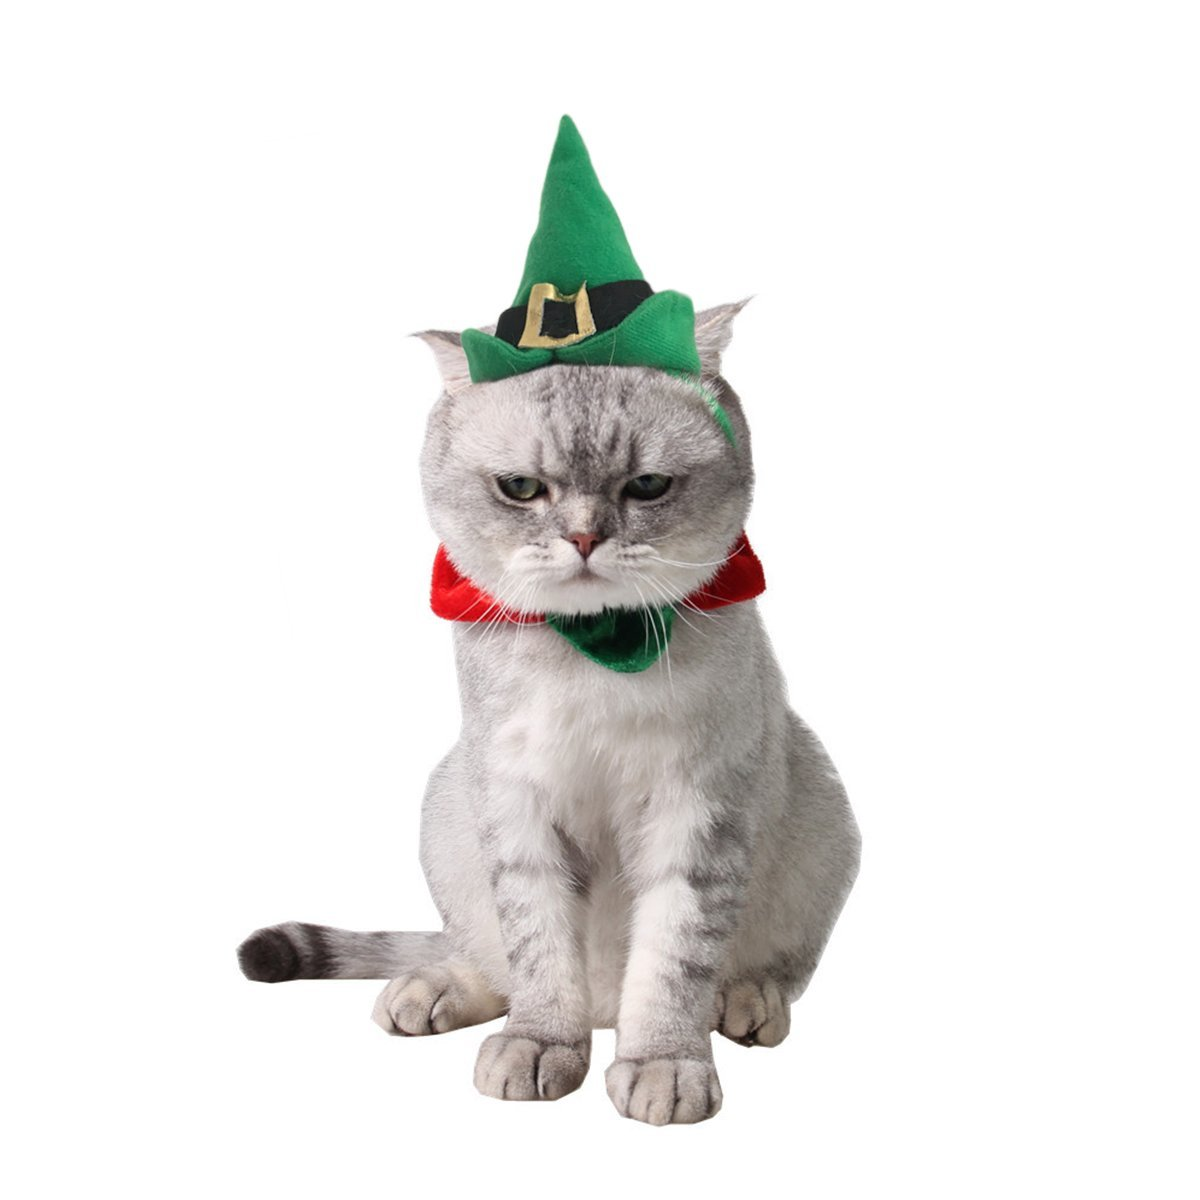 Christmas Cat Costumes That Will Get You In The Spirit